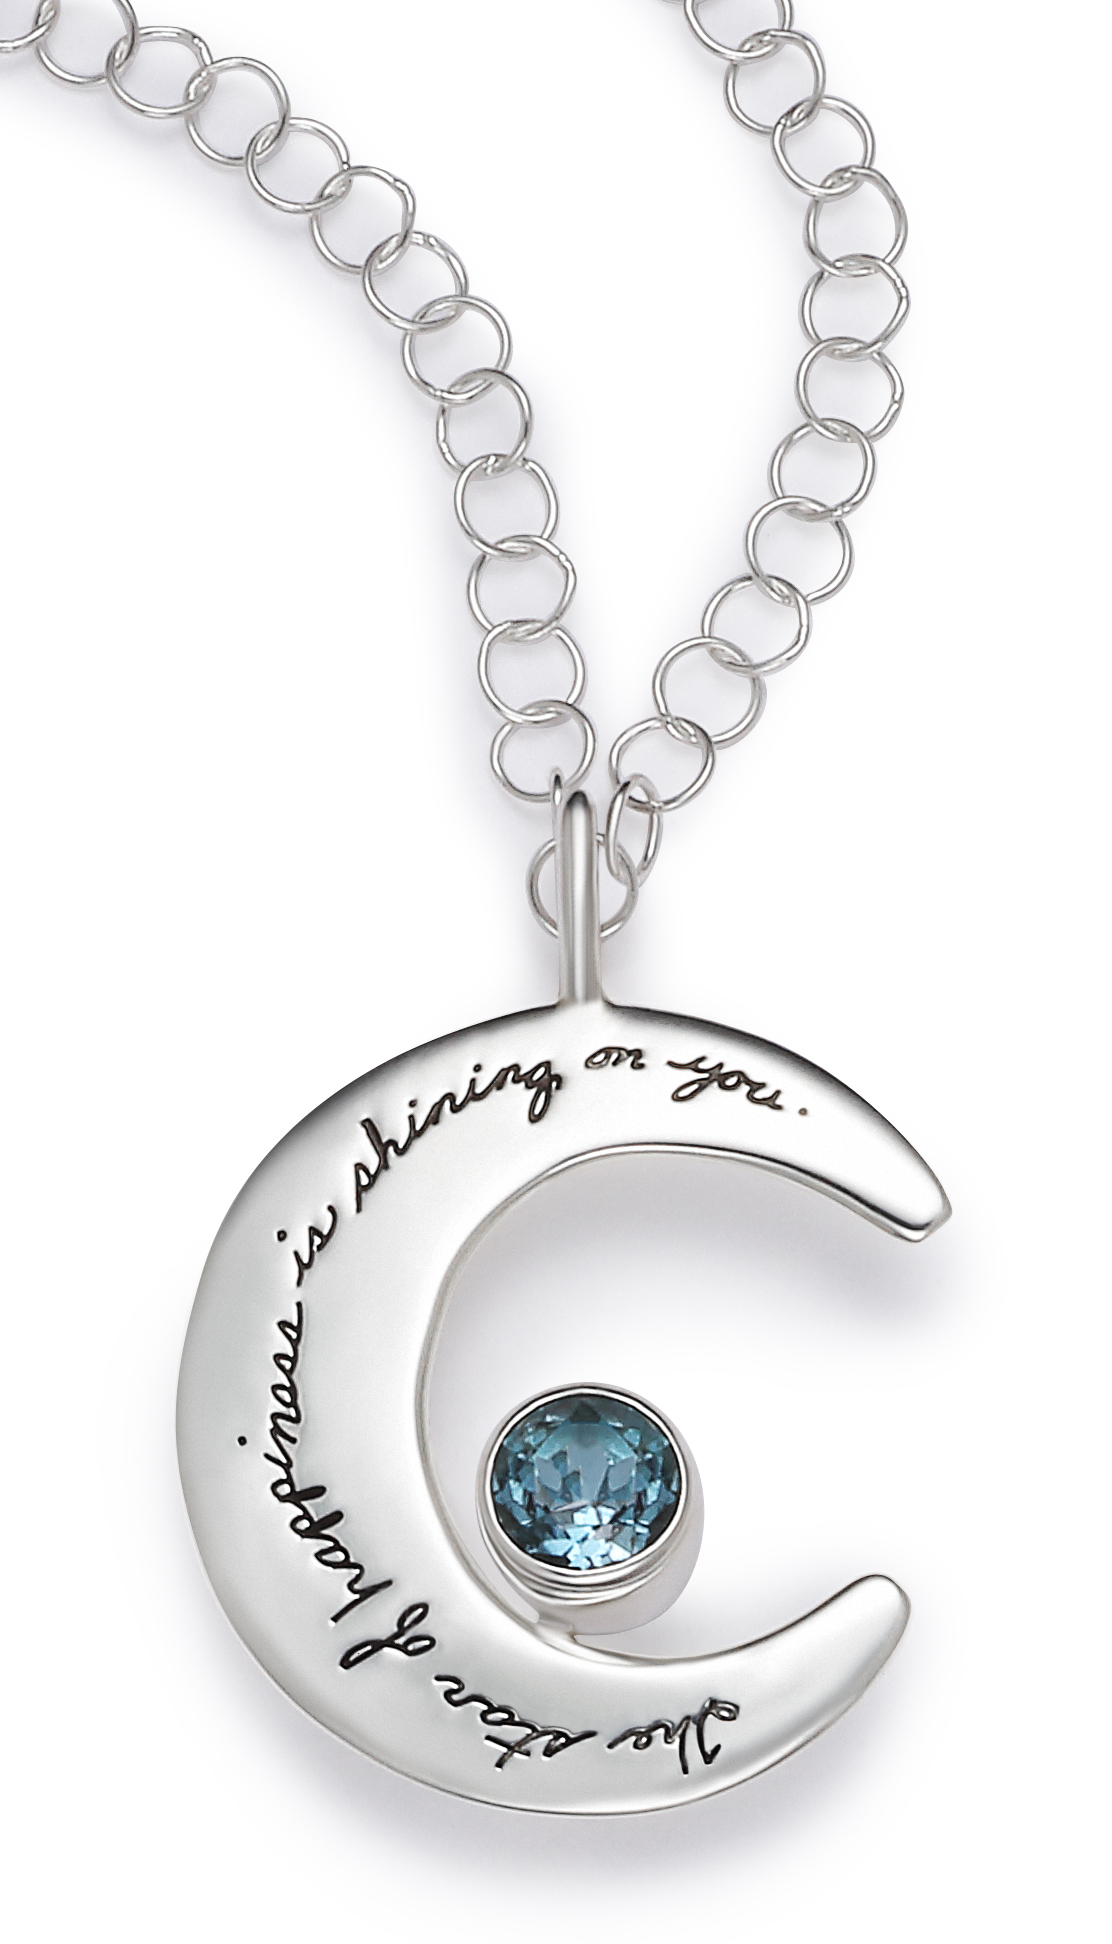 Inspirational sterling silver moon shaped necklace 6mm round blue topaz attached Engraved Quote: The star of happiness is shinning on you.